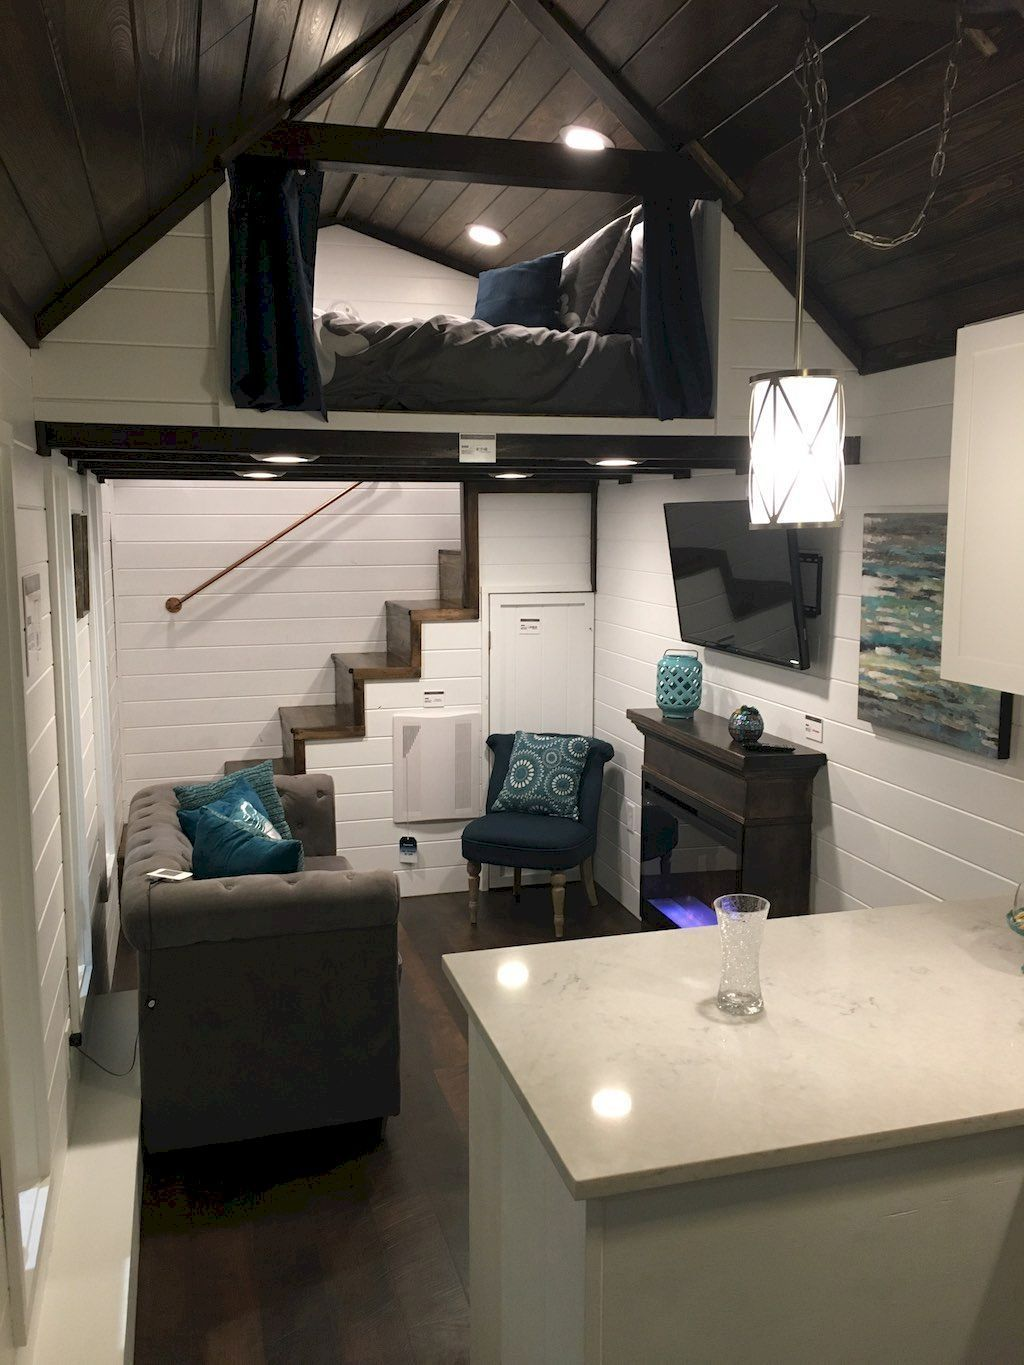 Best Tiny House Interior Design Ideas #houseinterior